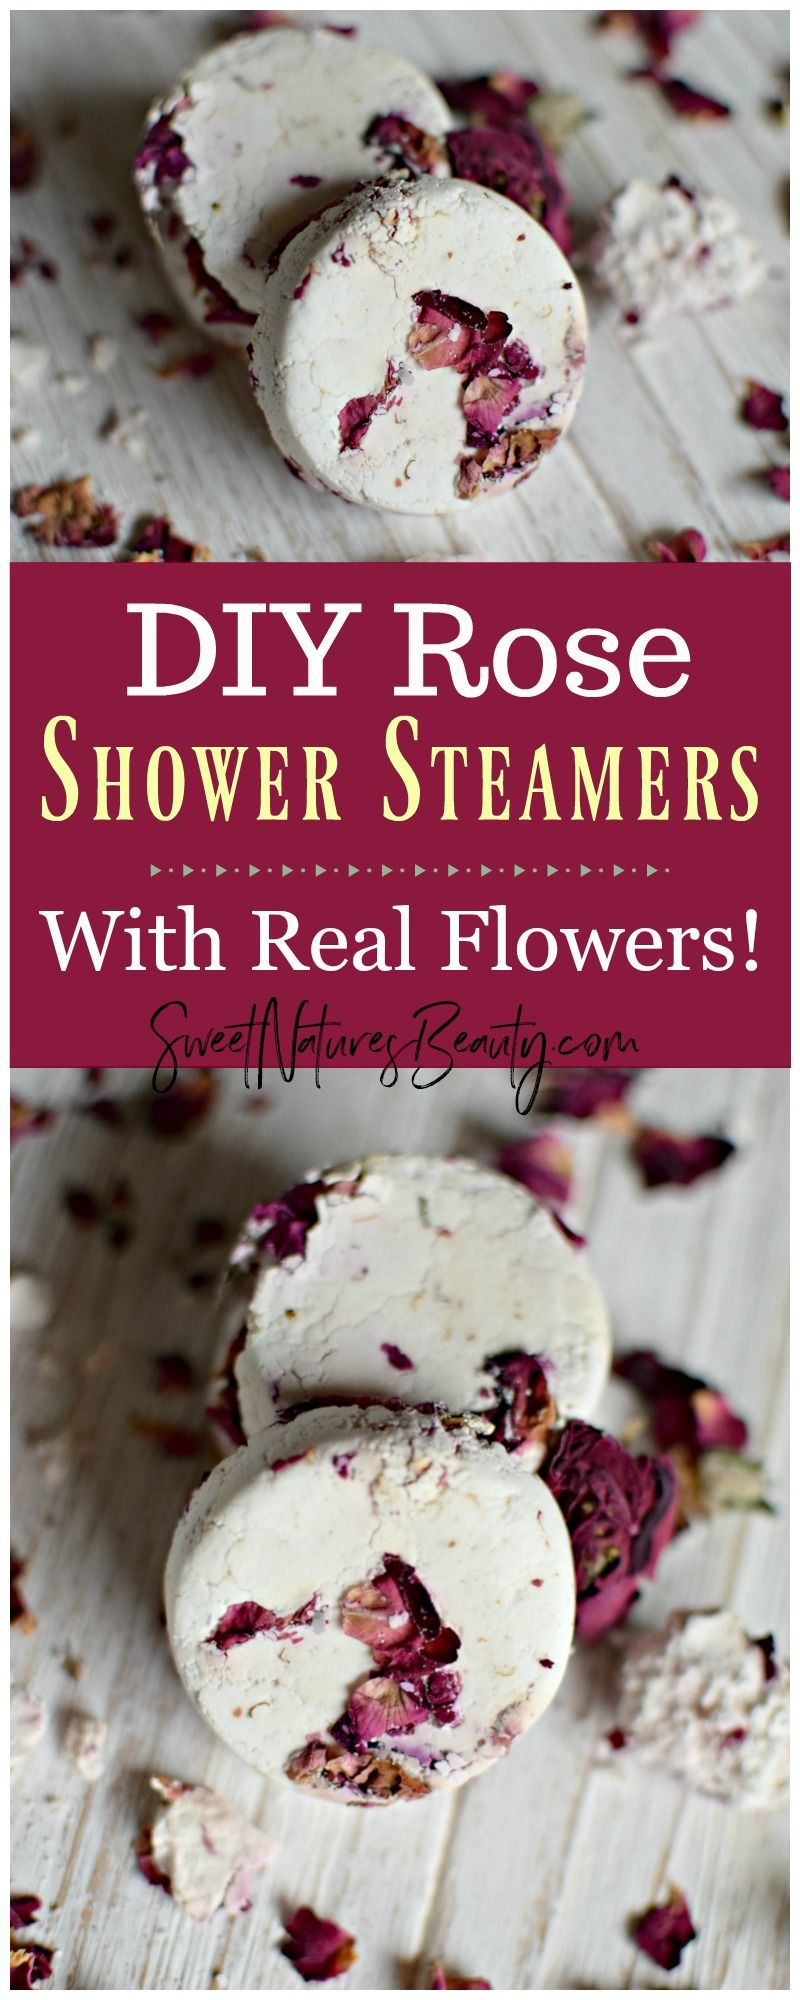 These Diy Rose Shower Steamers Use Essential Oils For Aromatherapy Click Through To Learn How To Make Diy Rose Sho Diy Roses Shower Steamers Diy Bath Products